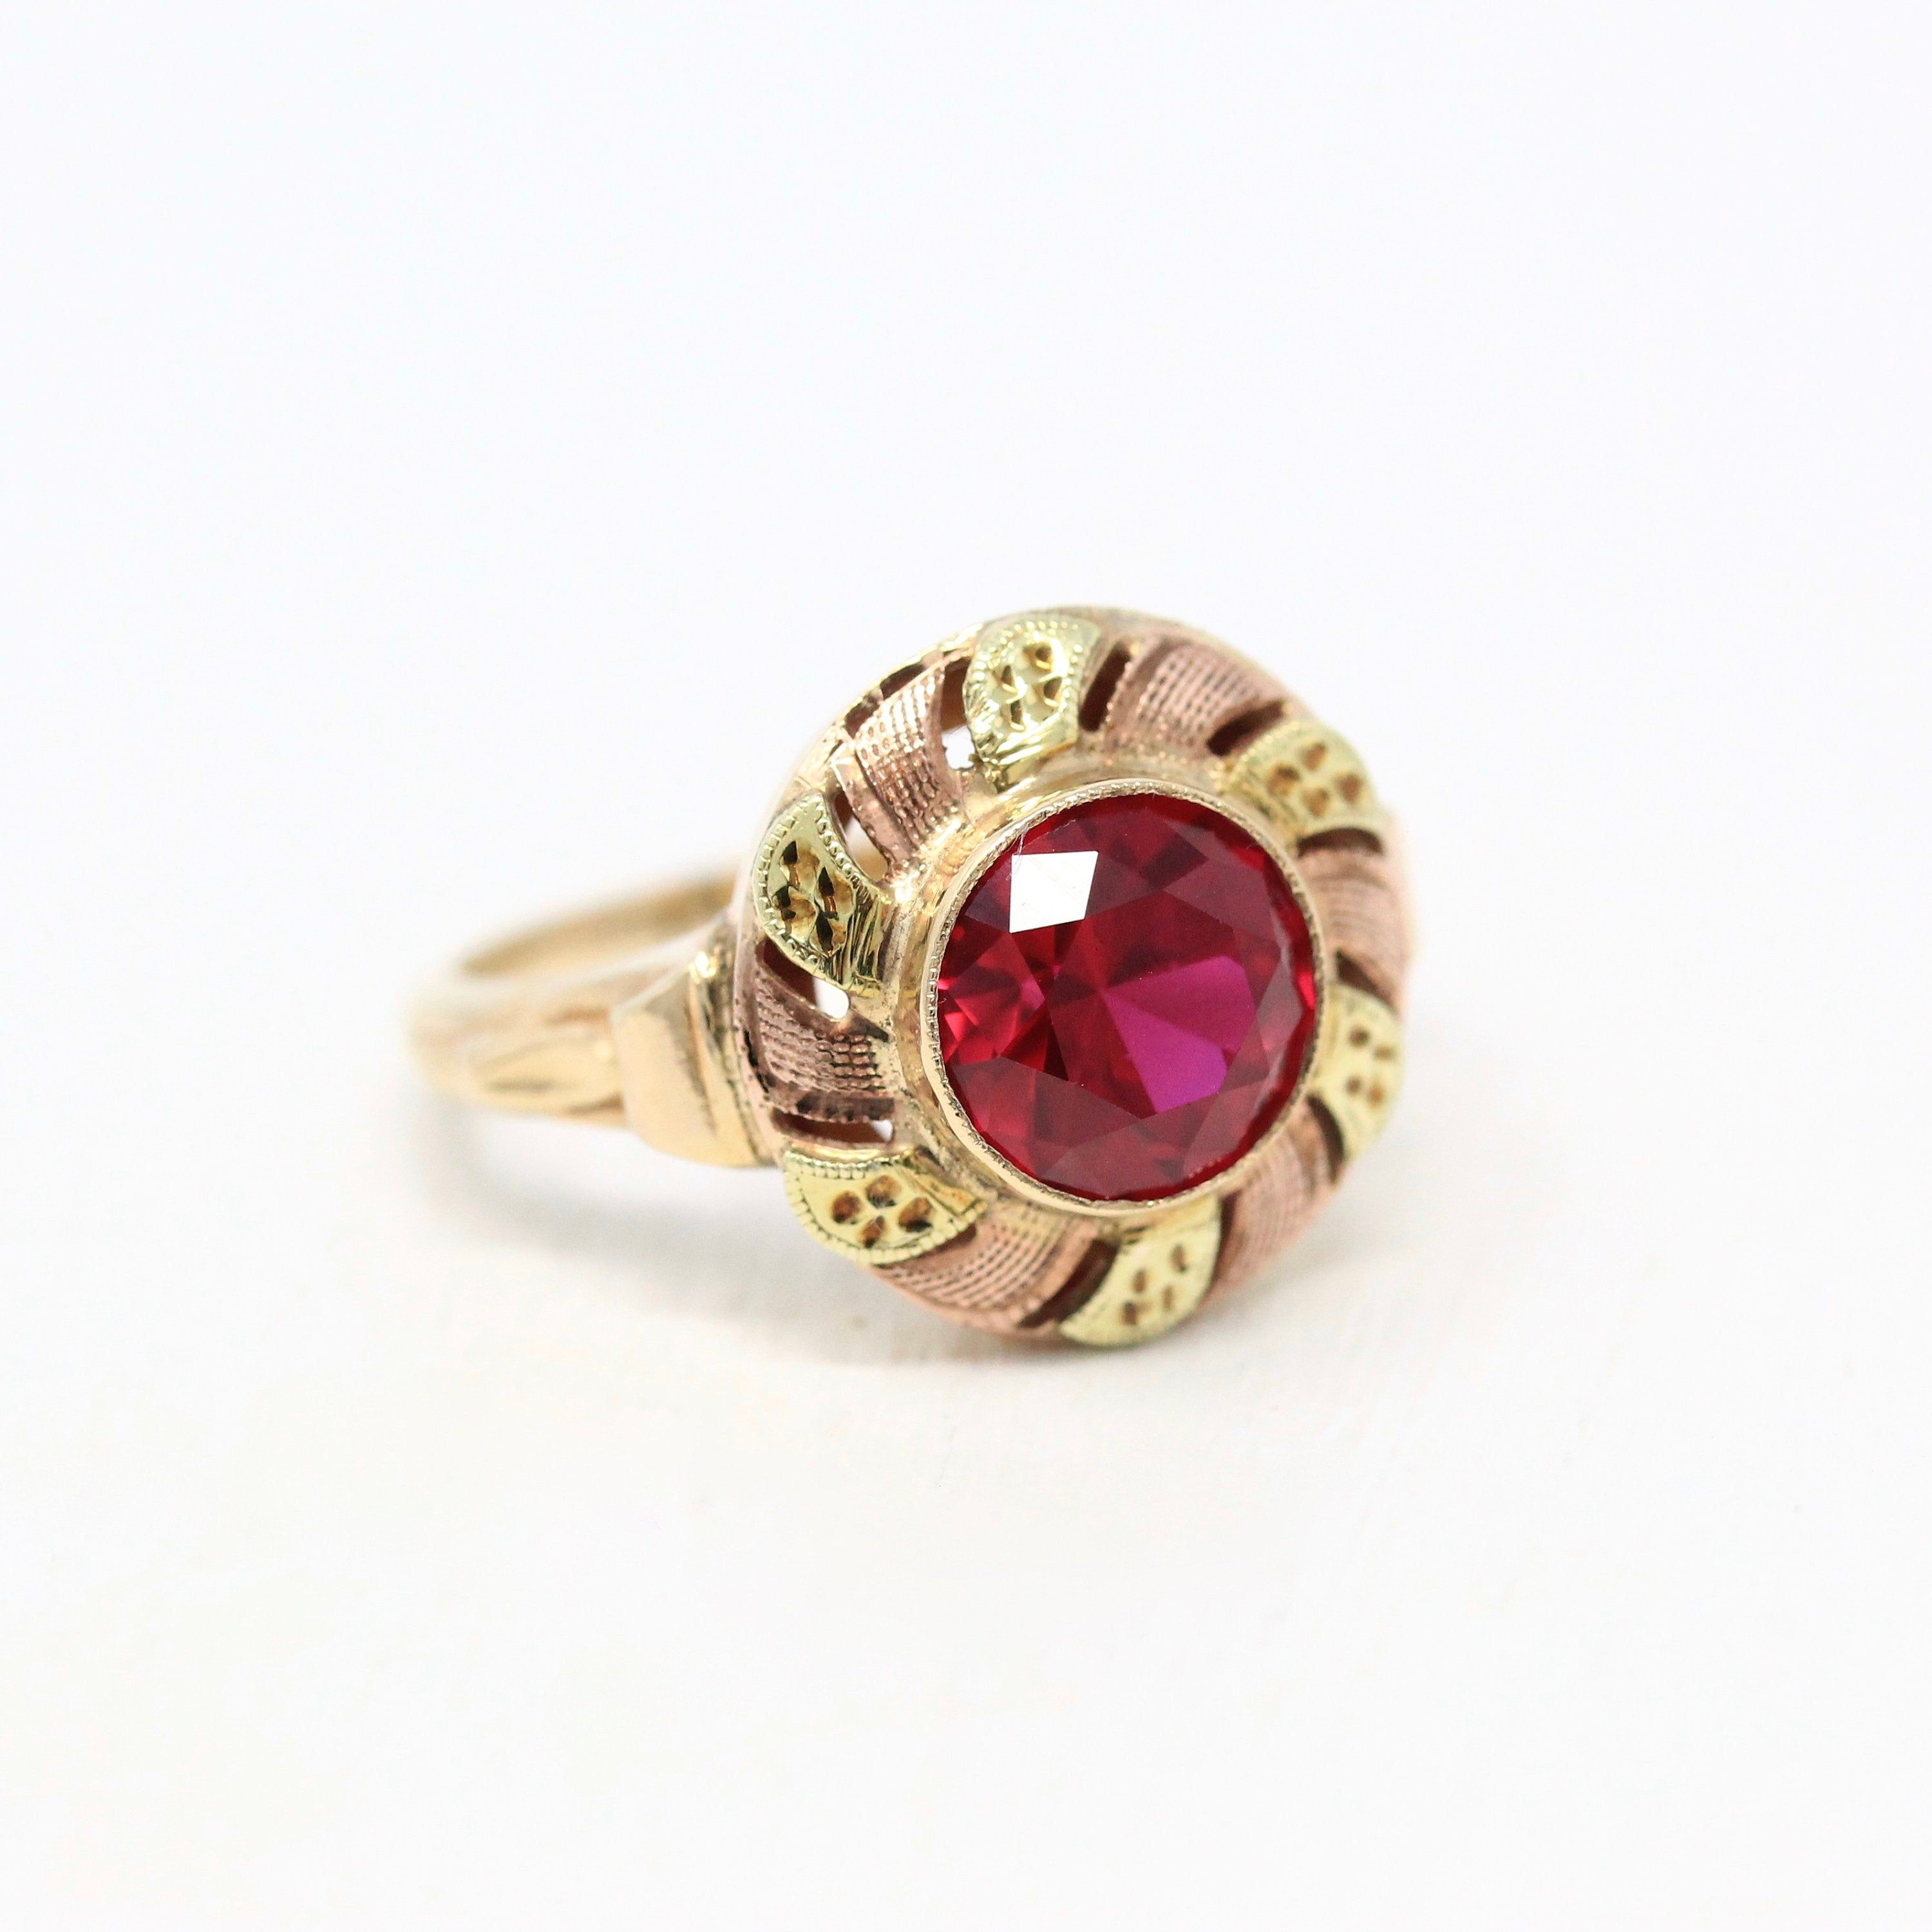 Created Ruby Ring Vintage 10k Yellow Rose Gold Red Stone Statement 1940s Size 6 Retro July Birthstone 2 31 Carat 40s Gift Fine Jewelry In 2020 Ruby Ring Vintage Fine Jewelry July Birthstone